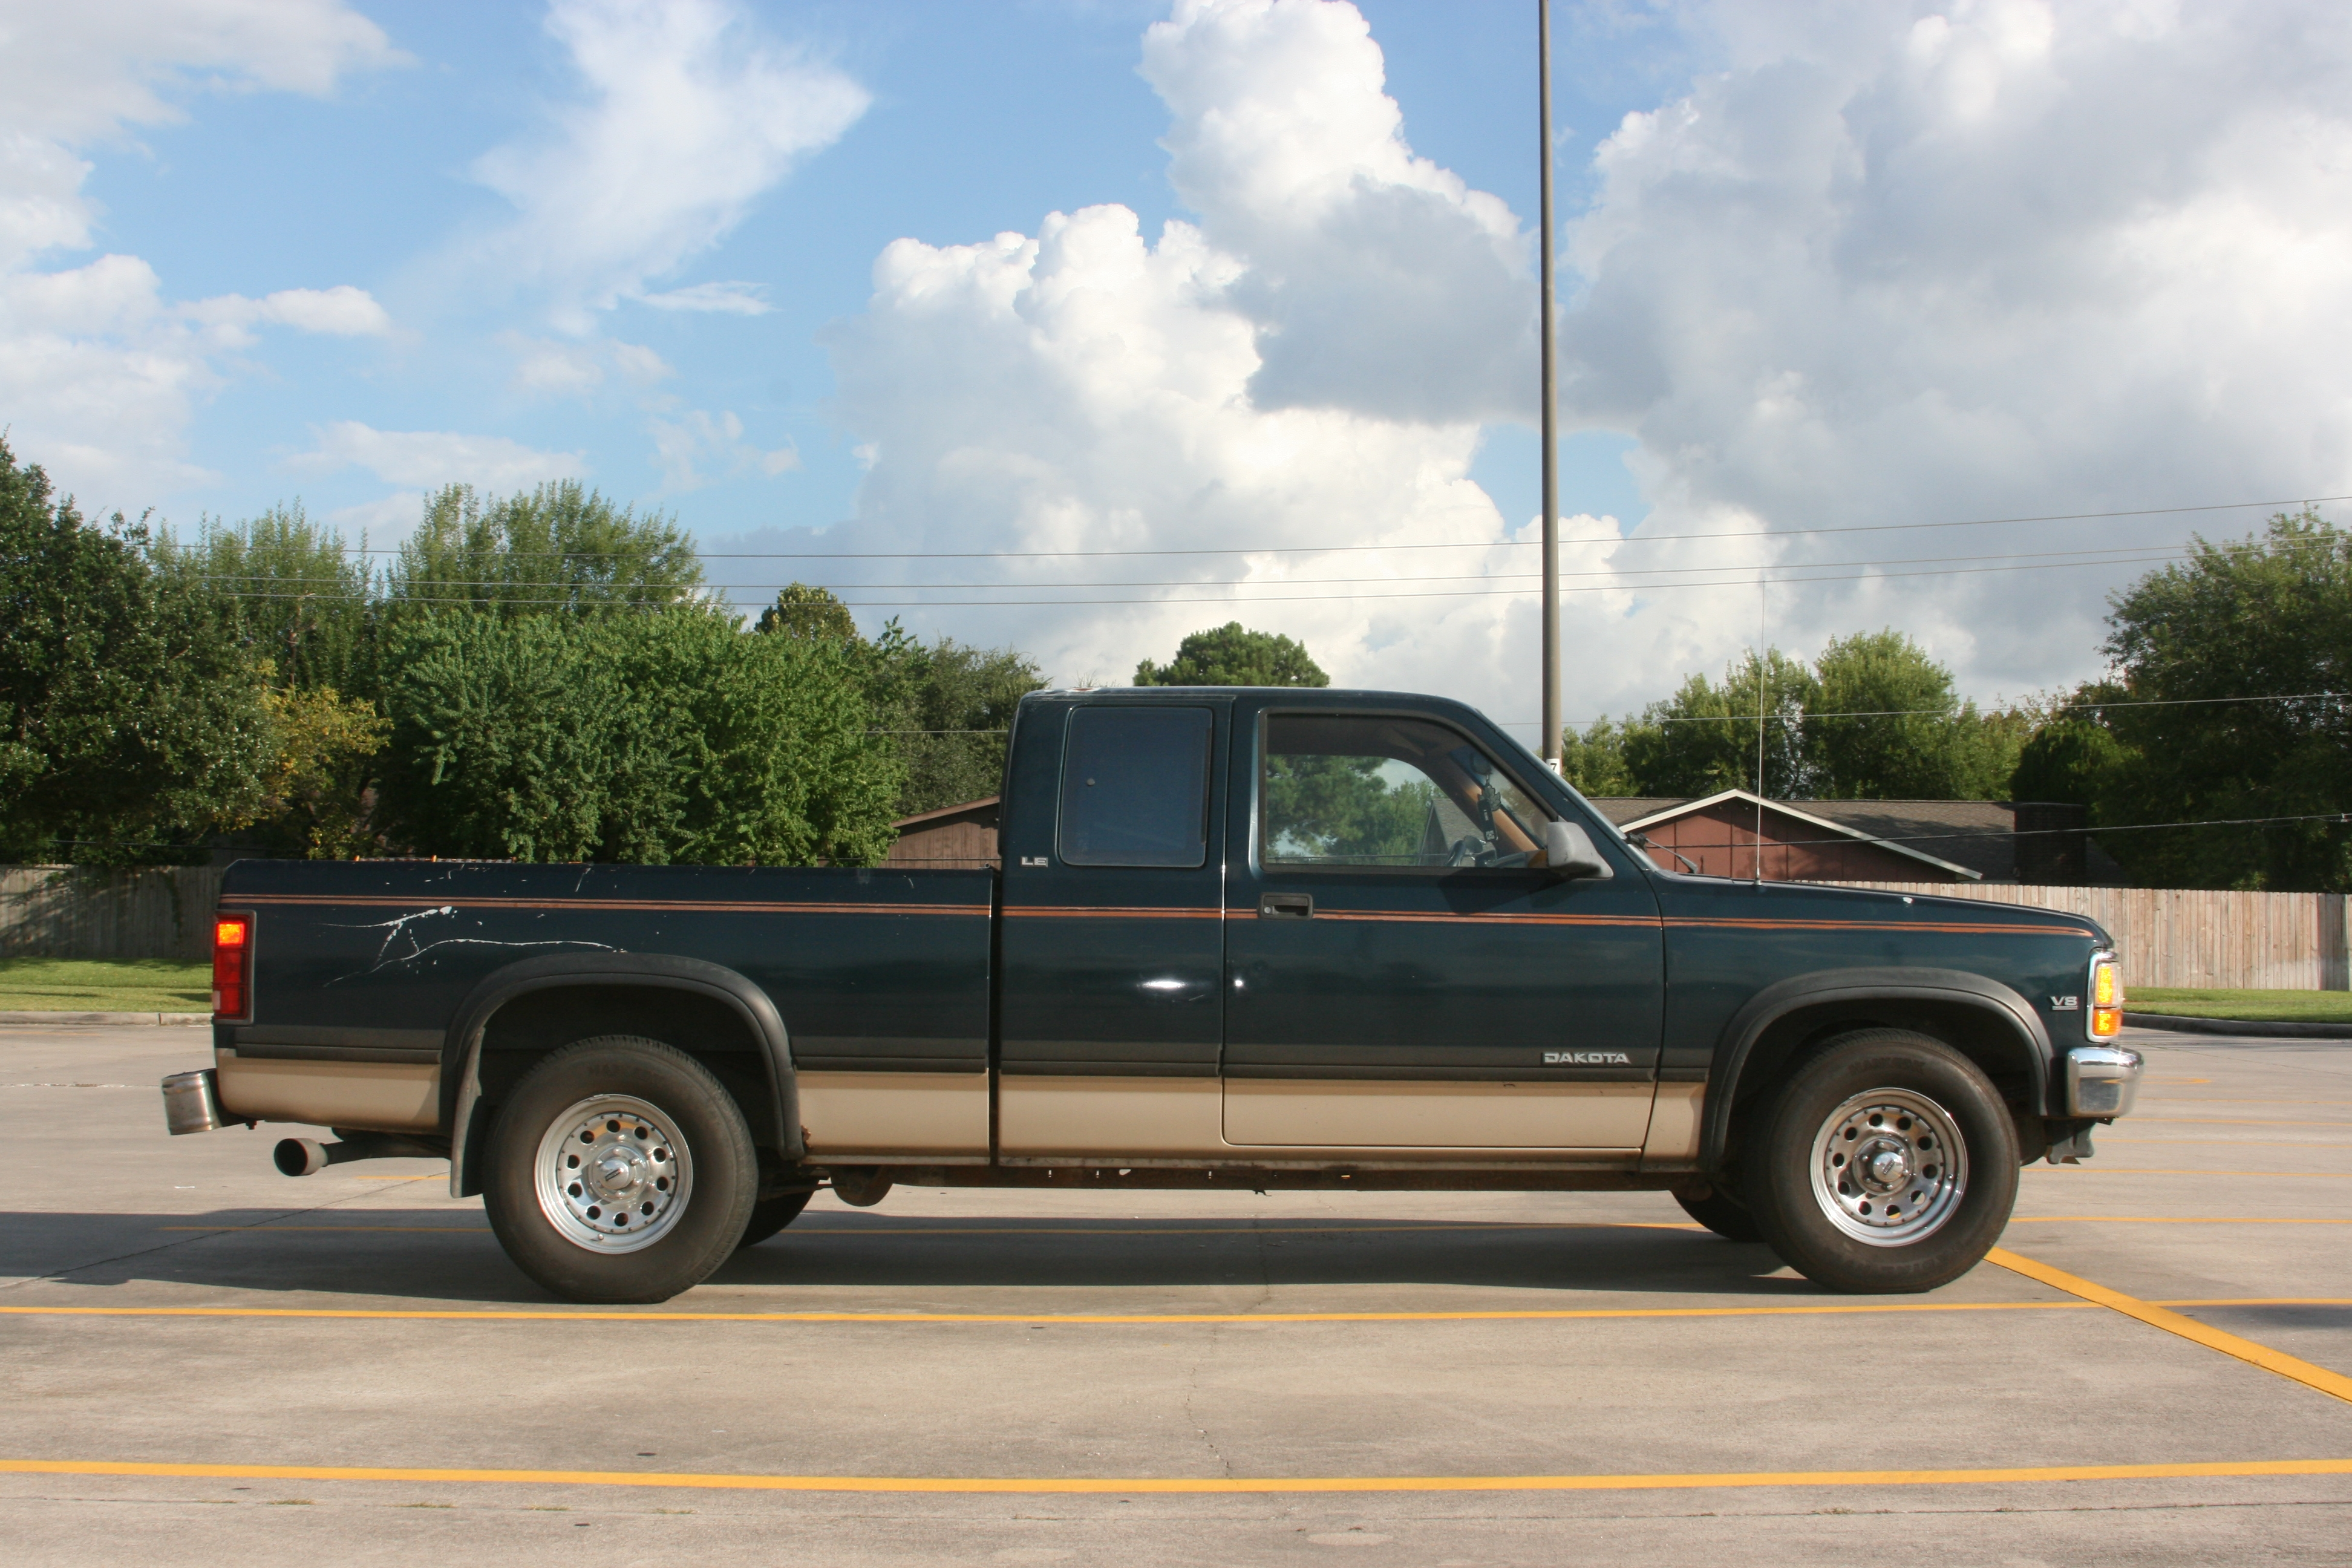 92dakotaV8 1992 Dodge Dakota Extended Cab 14723835